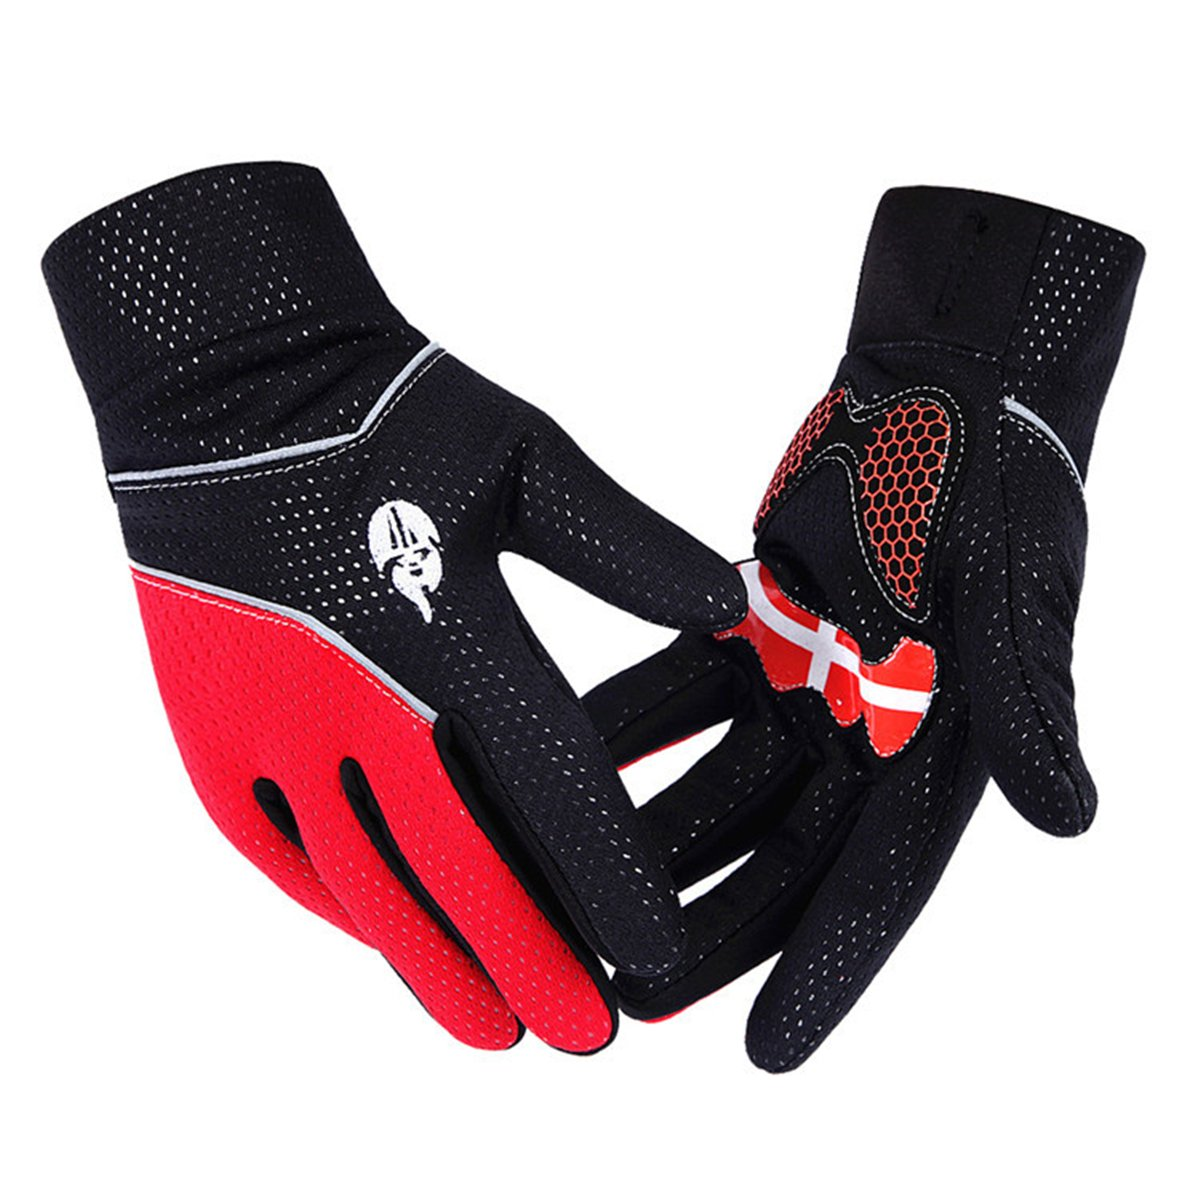 ApparelSales Mens Outdoor Windproof Long Finger Cycling Bike Bicycle Gloves Lindaeshop